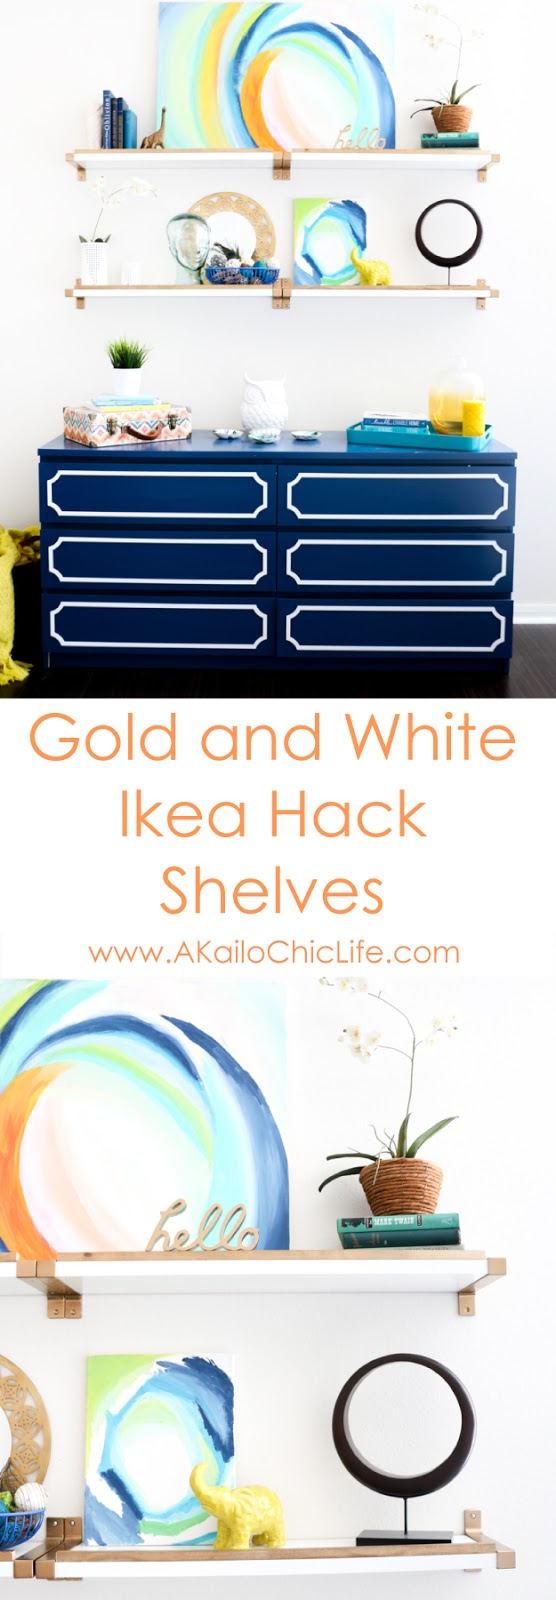 Gold and white ikea hack shelves tutorial - diy project - home decor project